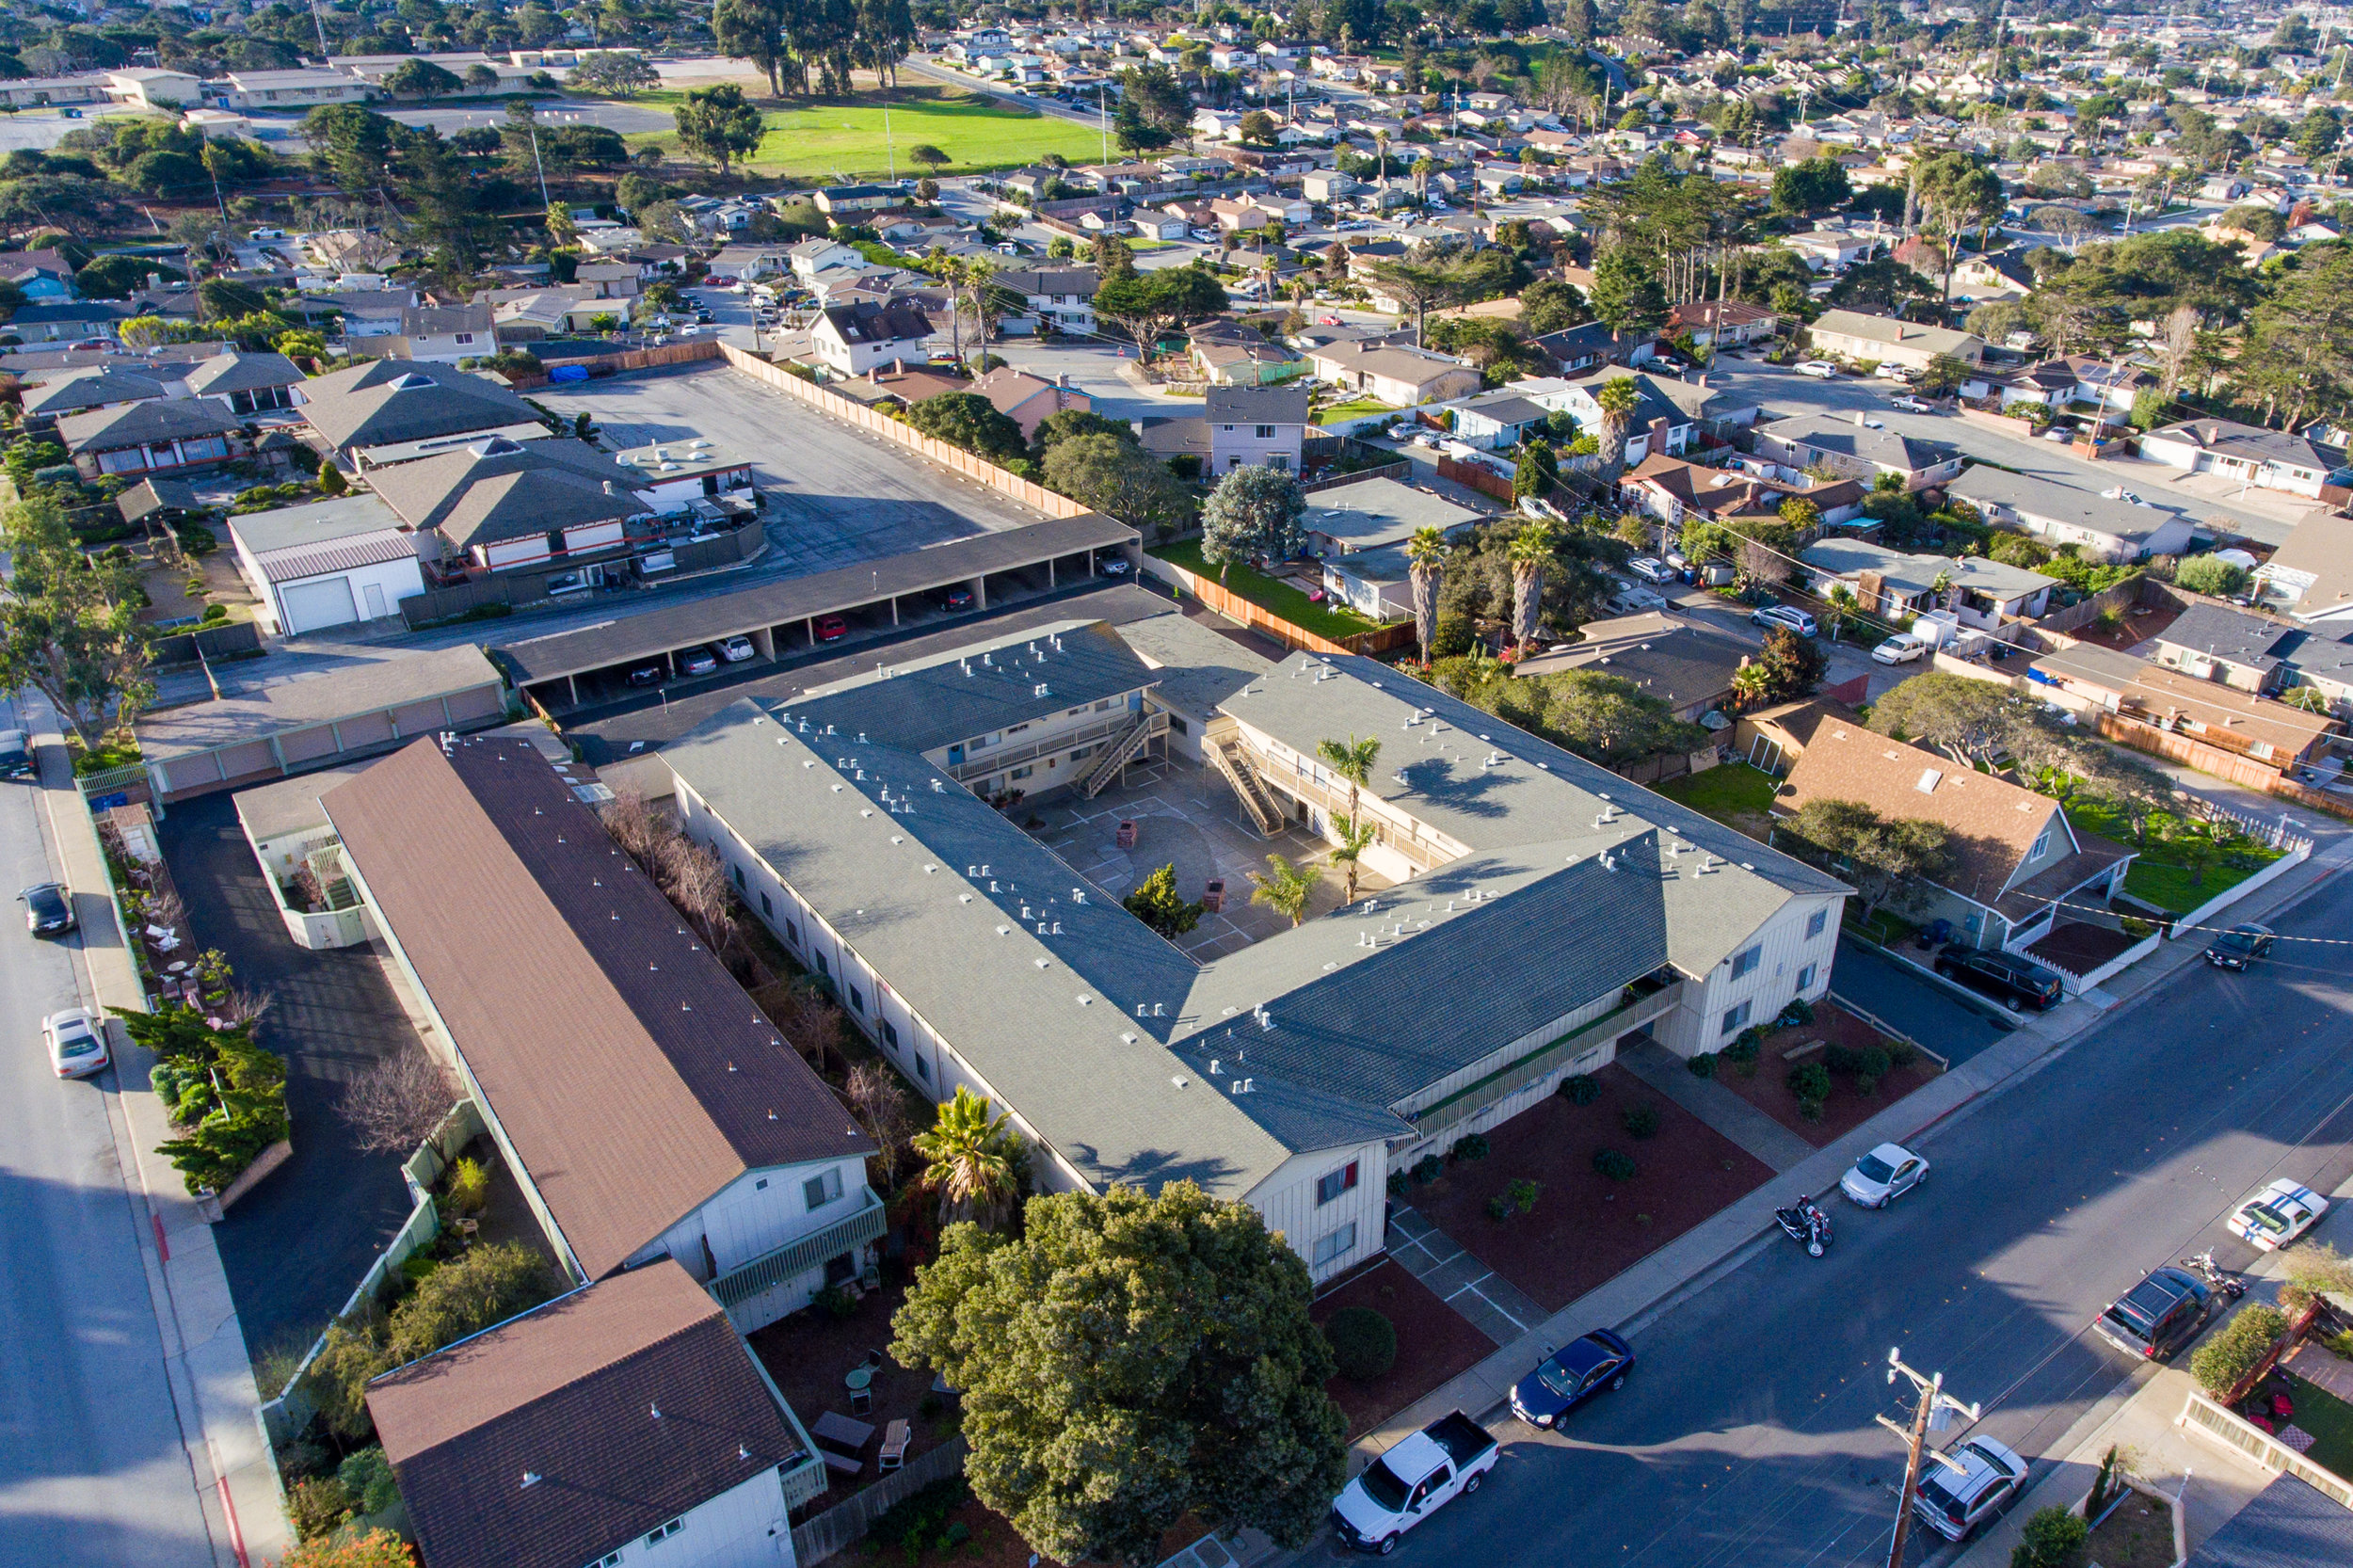 Closed March, 2019 - Garden Court Apartments | 1280 Hilby Ave, Seaside, CA32 Units | 2/1.00 (32) | Value-Add